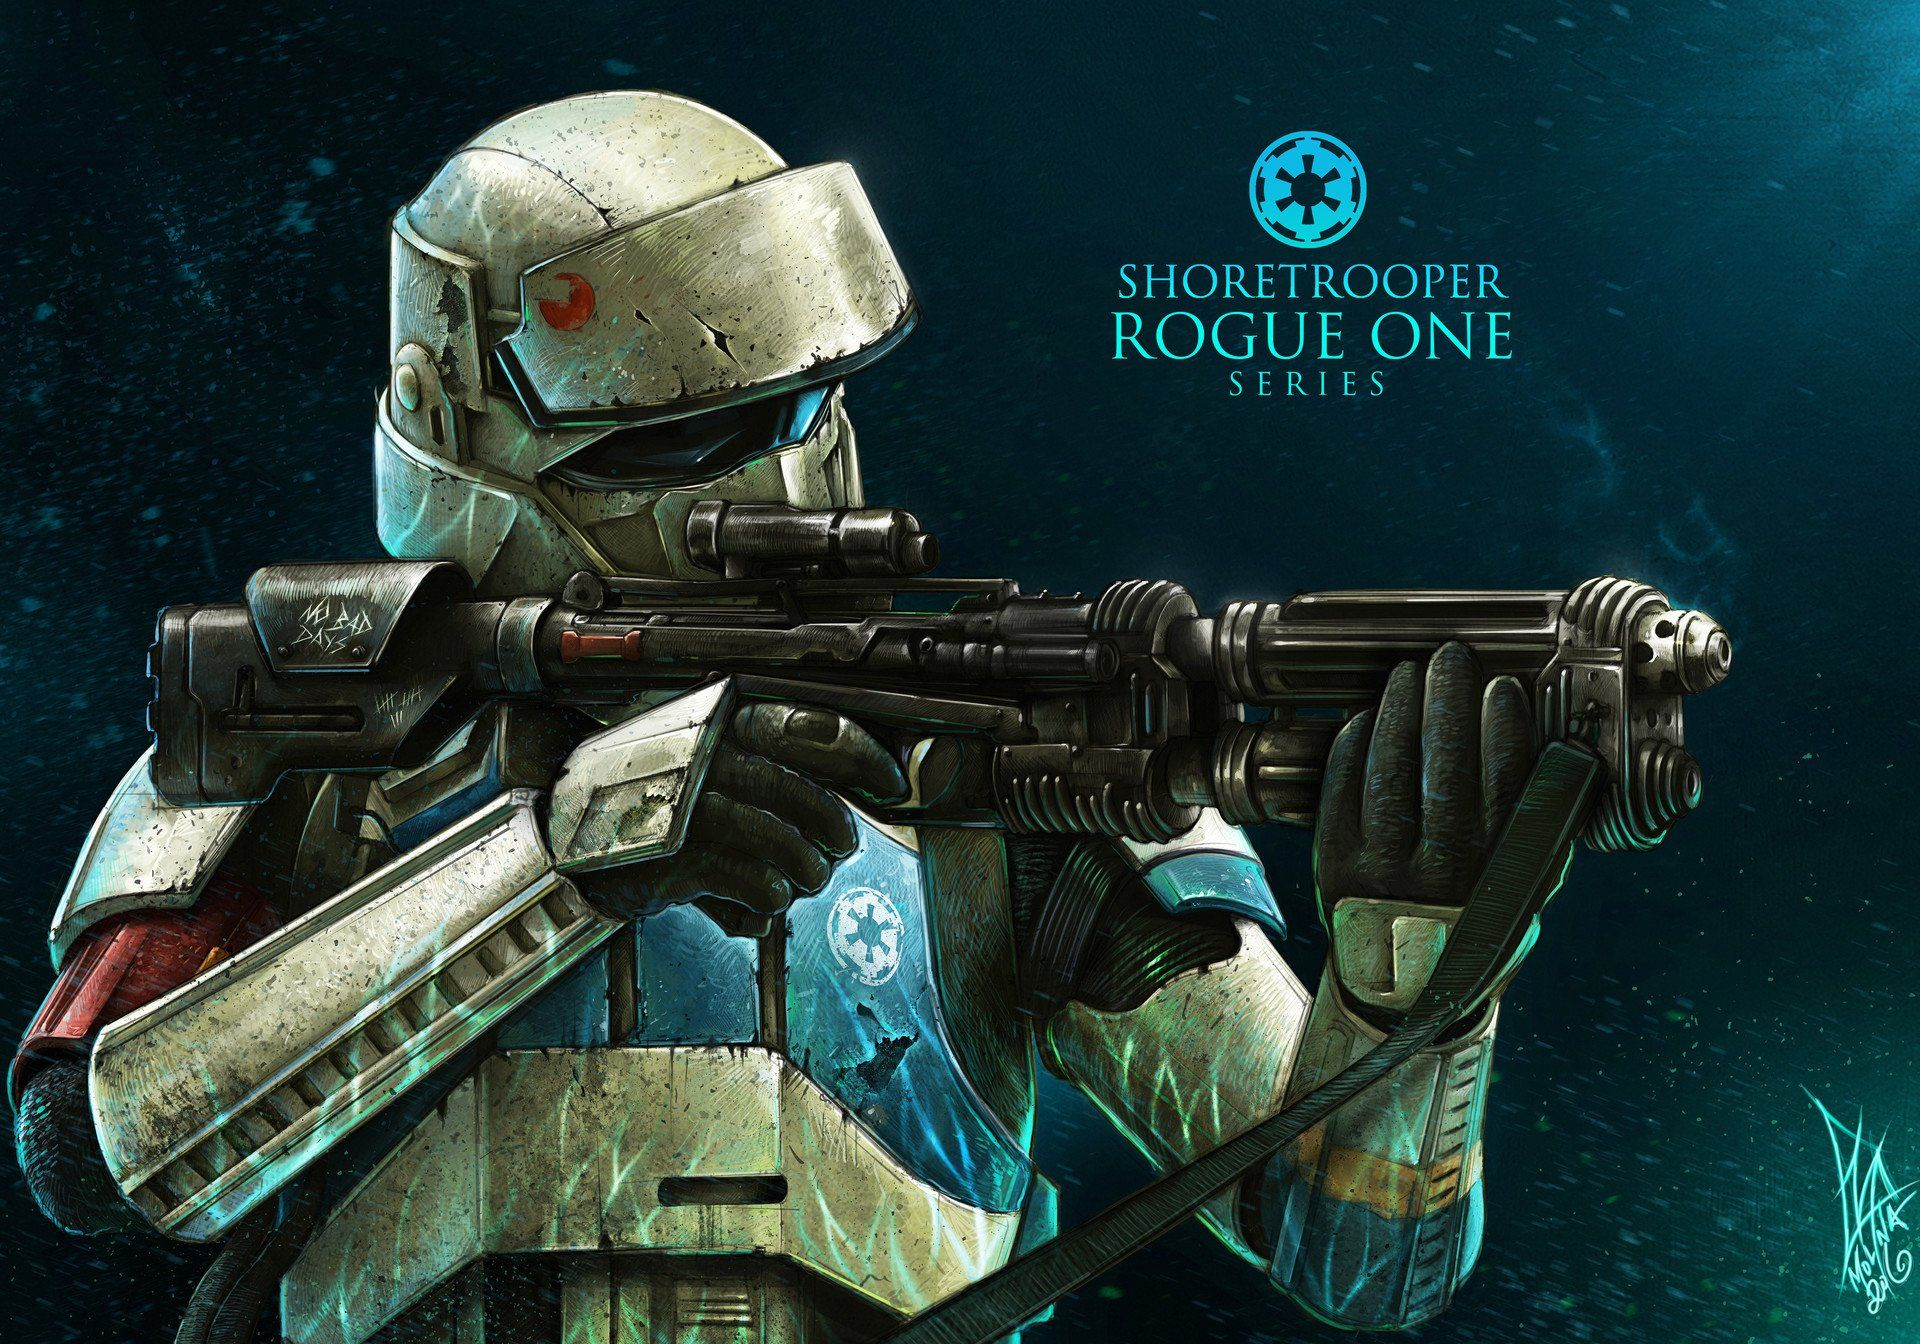 Shoretrooper Hd Wallpapers Top Free Shoretrooper Hd Backgrounds Wallpaperaccess